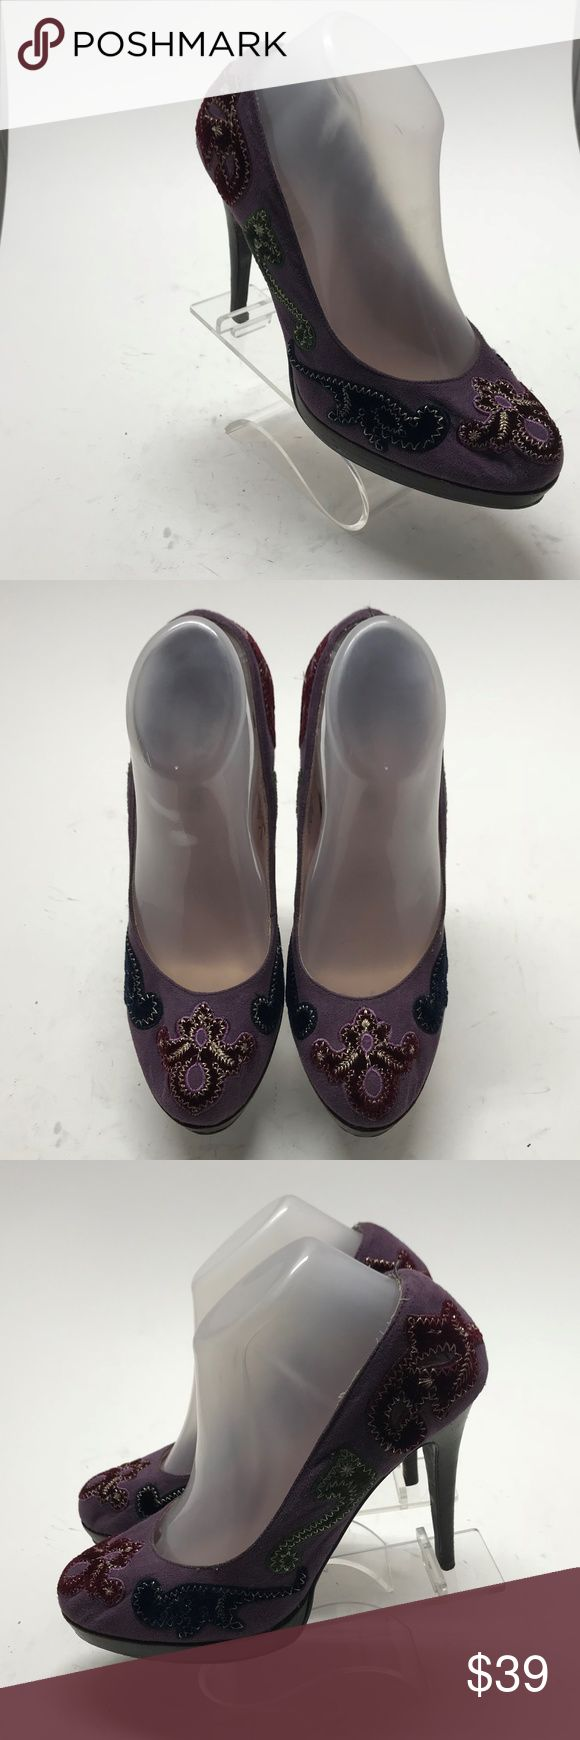 Colin Stuart Purple Fabric Boho Embellished Heels Colin Stuart Purple Fabric Boho Embellished Appliqué Heels Pumps Size 8 M  please look at pictures overall in really good condition, some wear on bottom soles Colin Stuart Shoes Heels